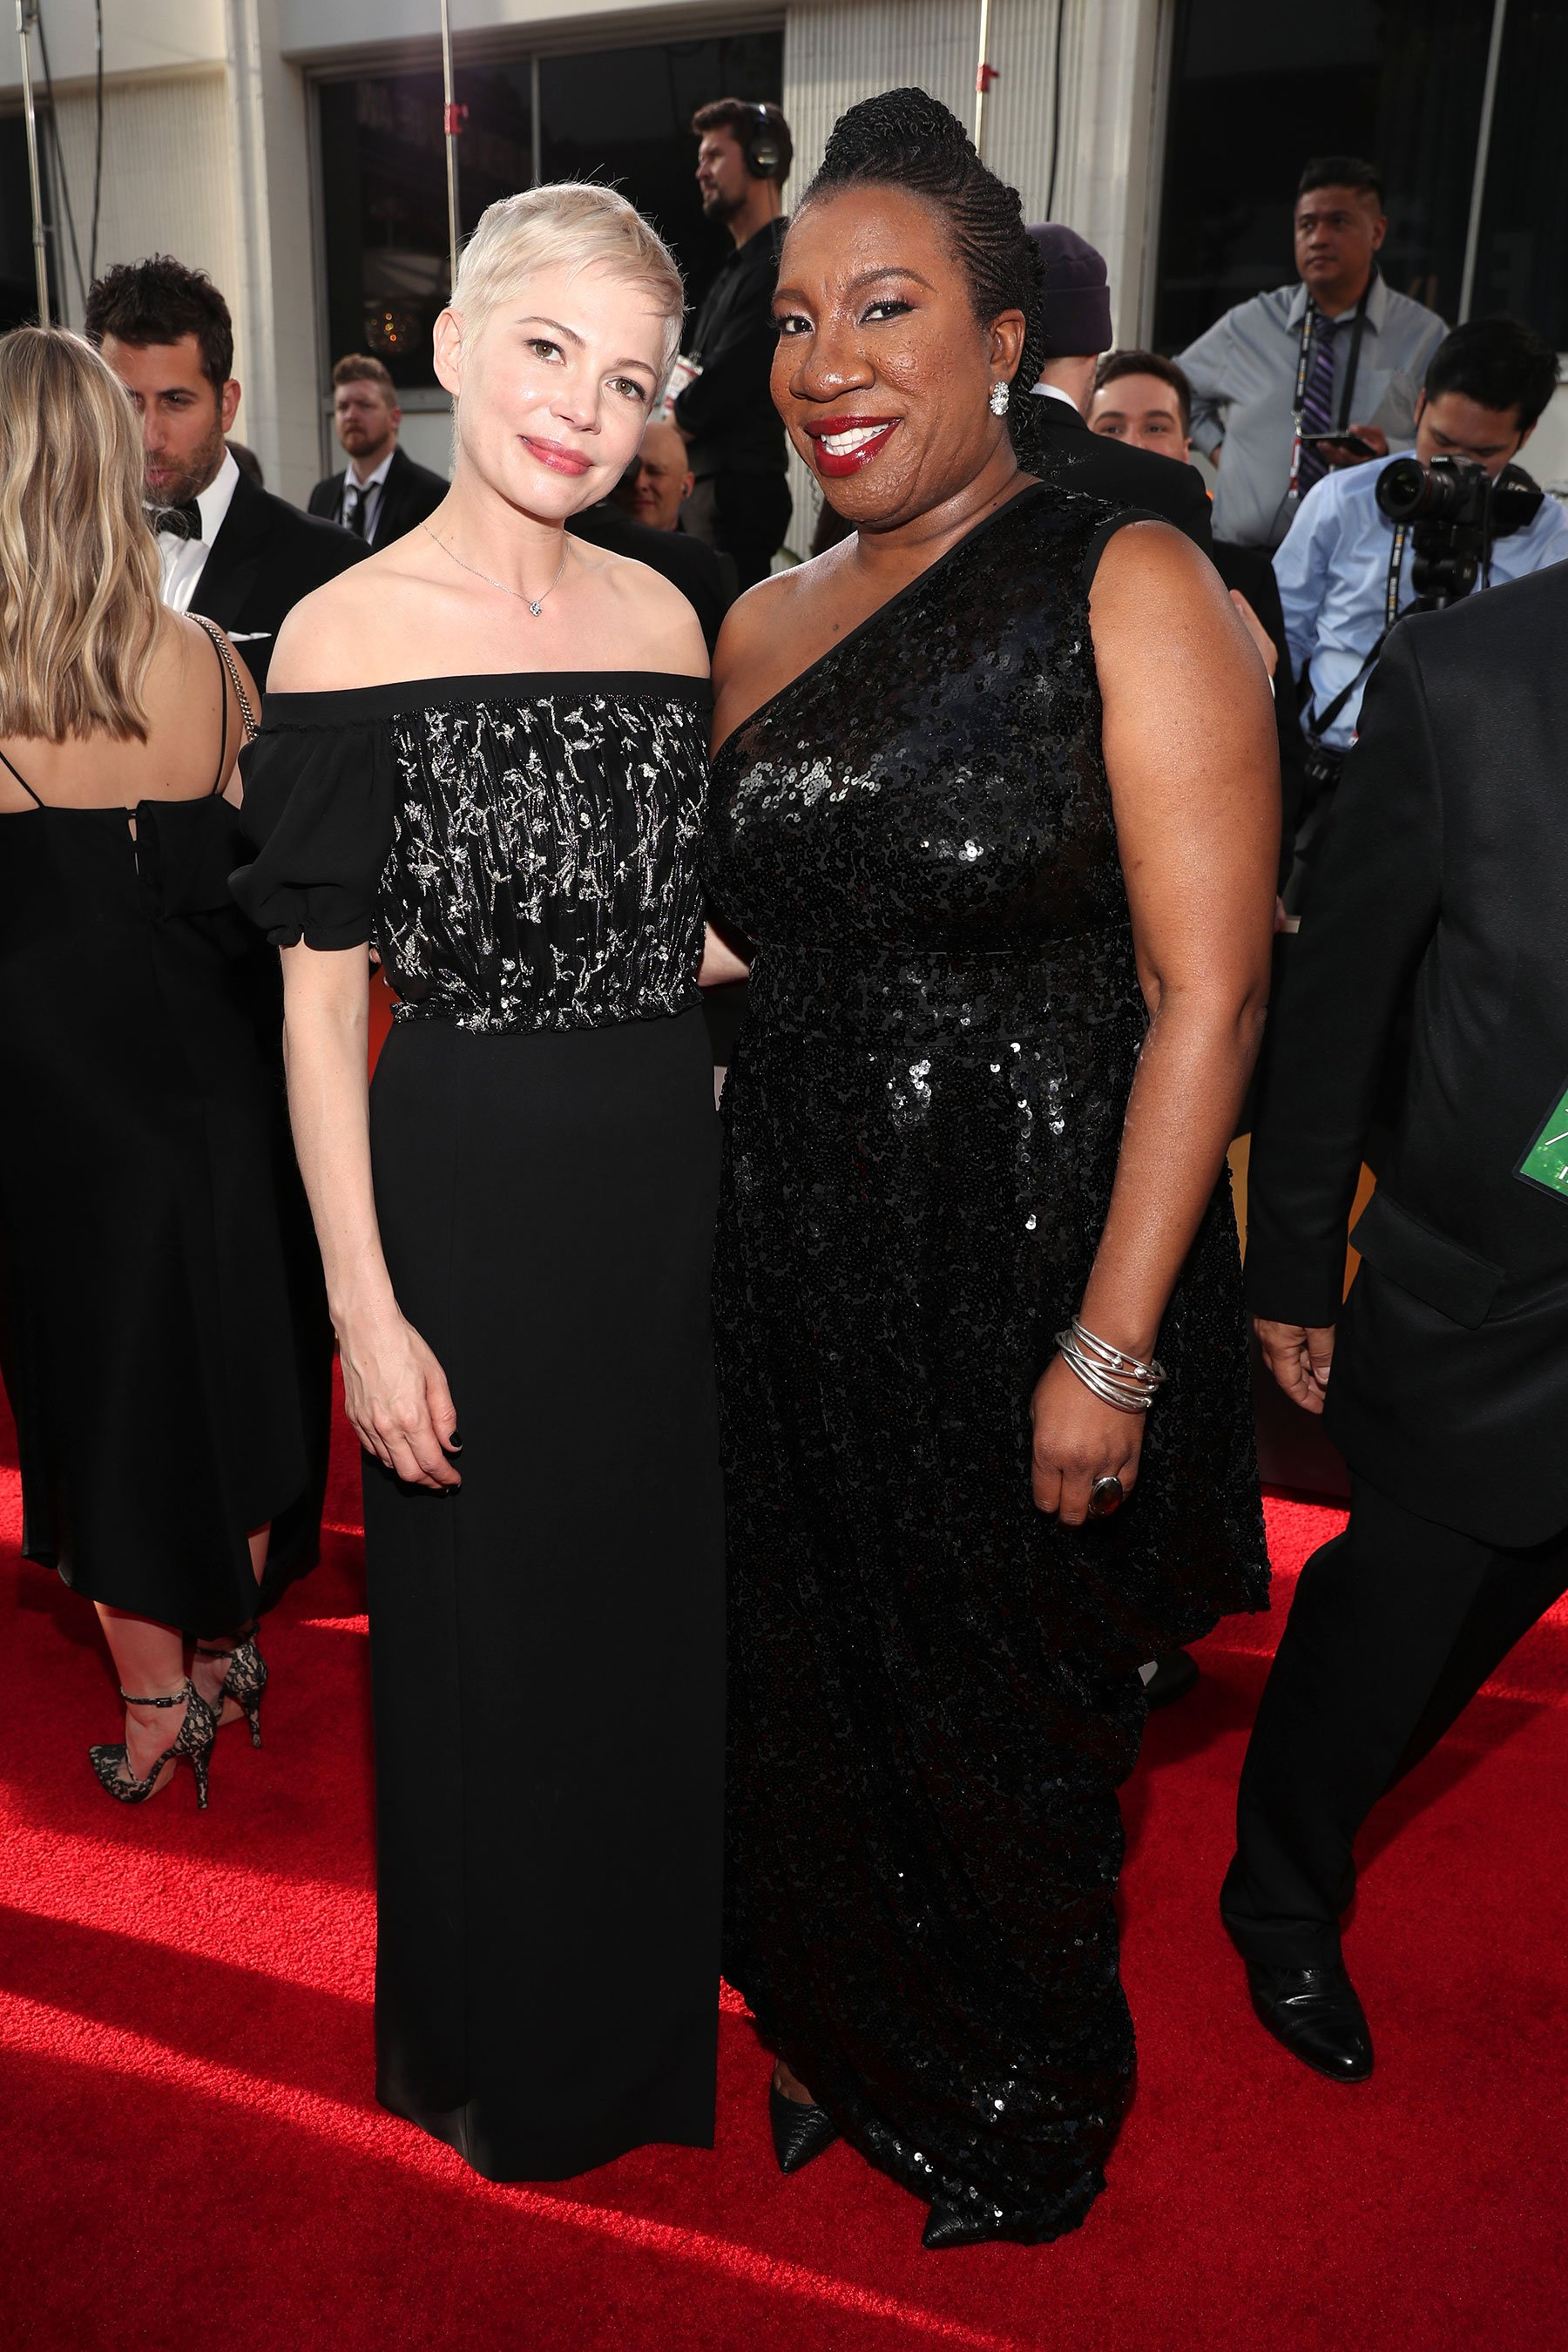 Golden Globes: Michelle Williams spotlights #MeToo founder Tarana Burke during red carpet interview